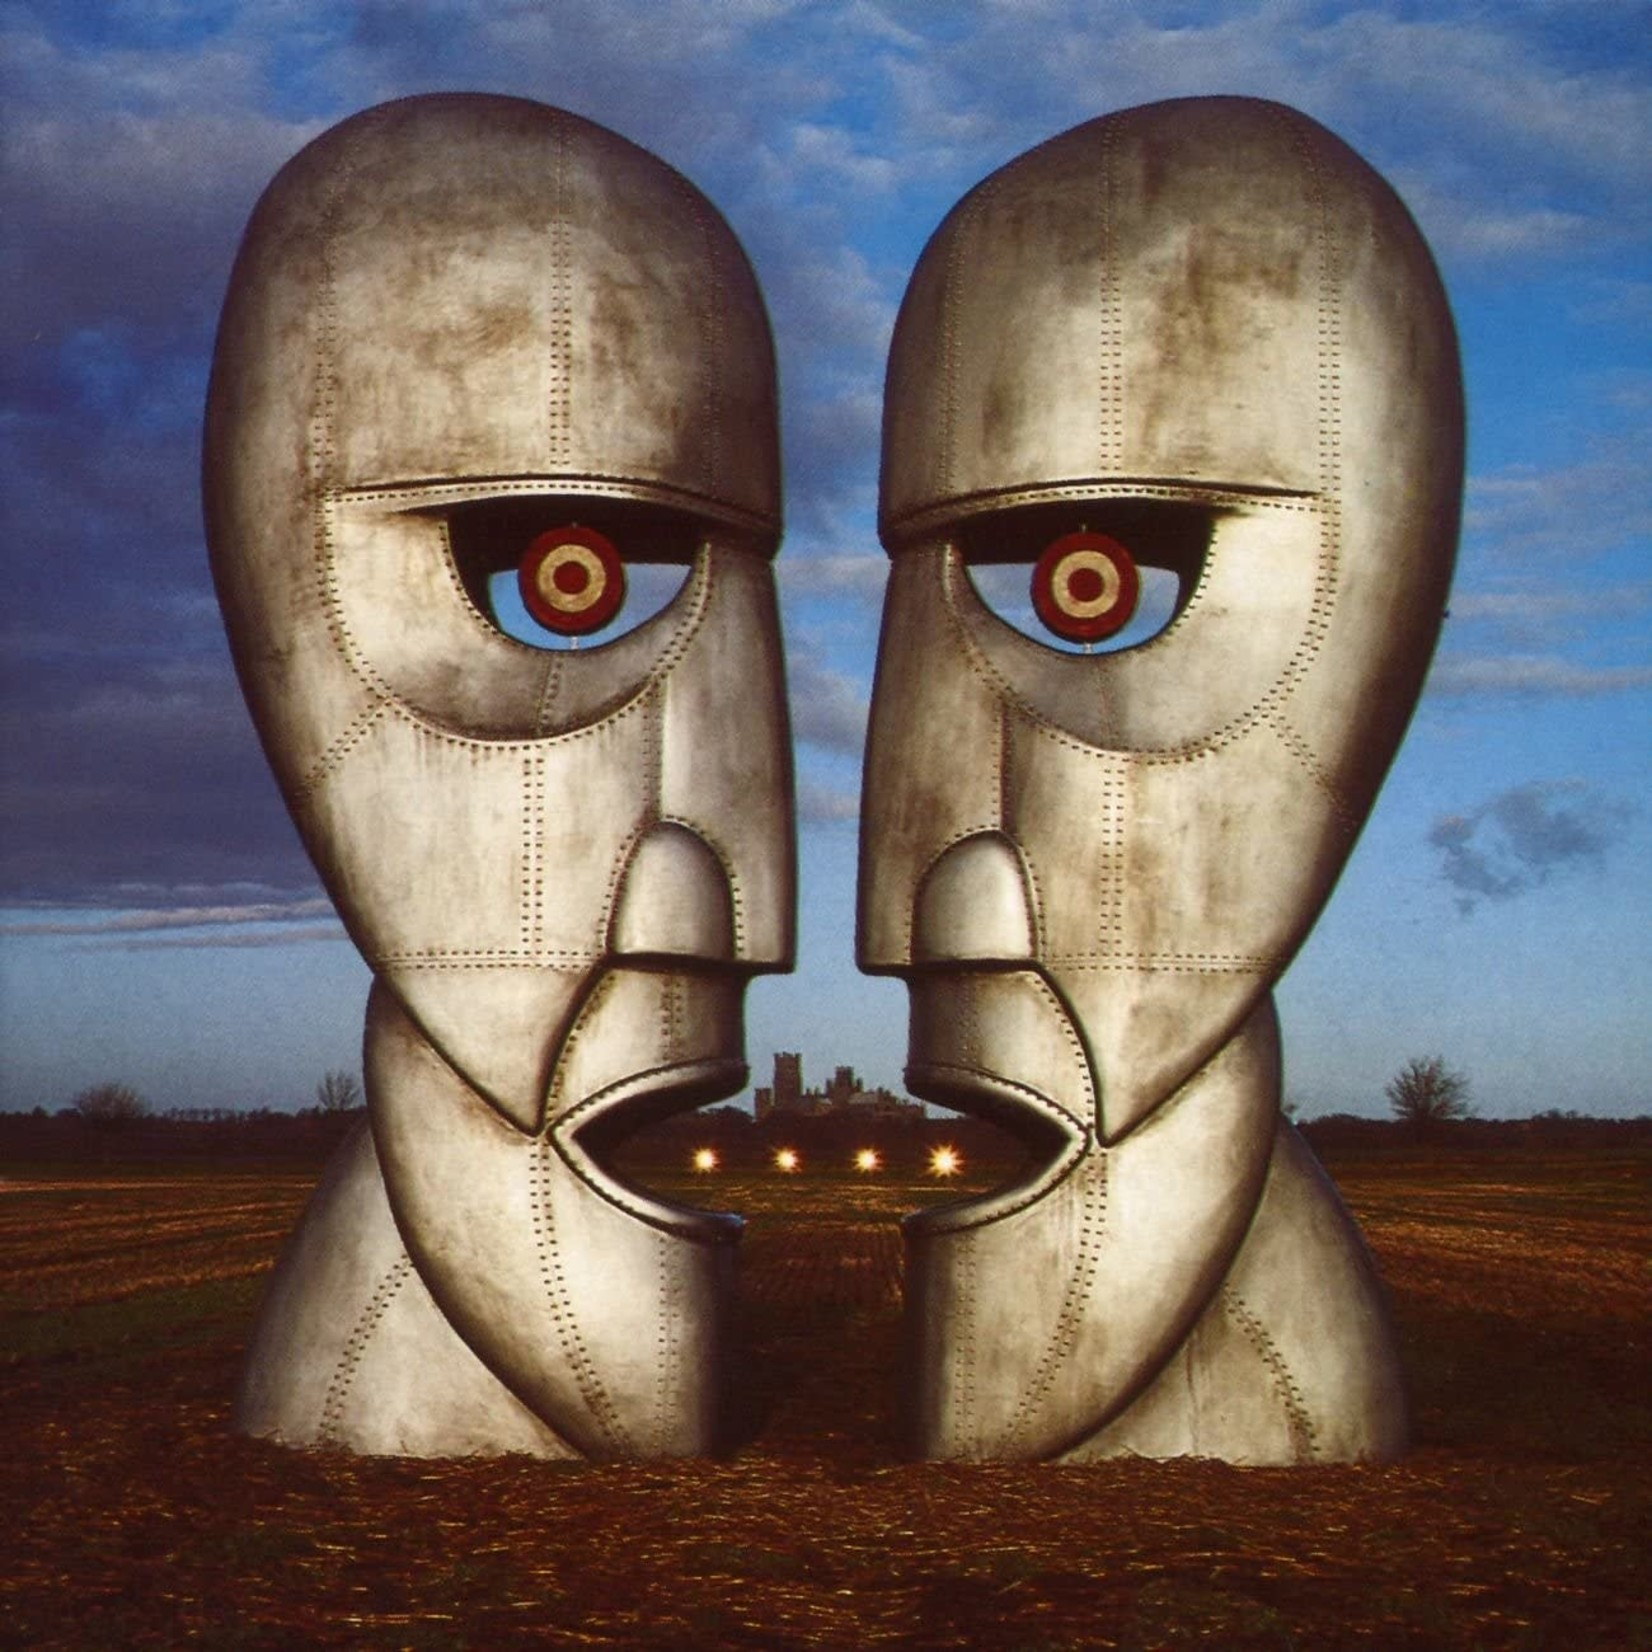 [New] Pink Floyd: The Division Bell